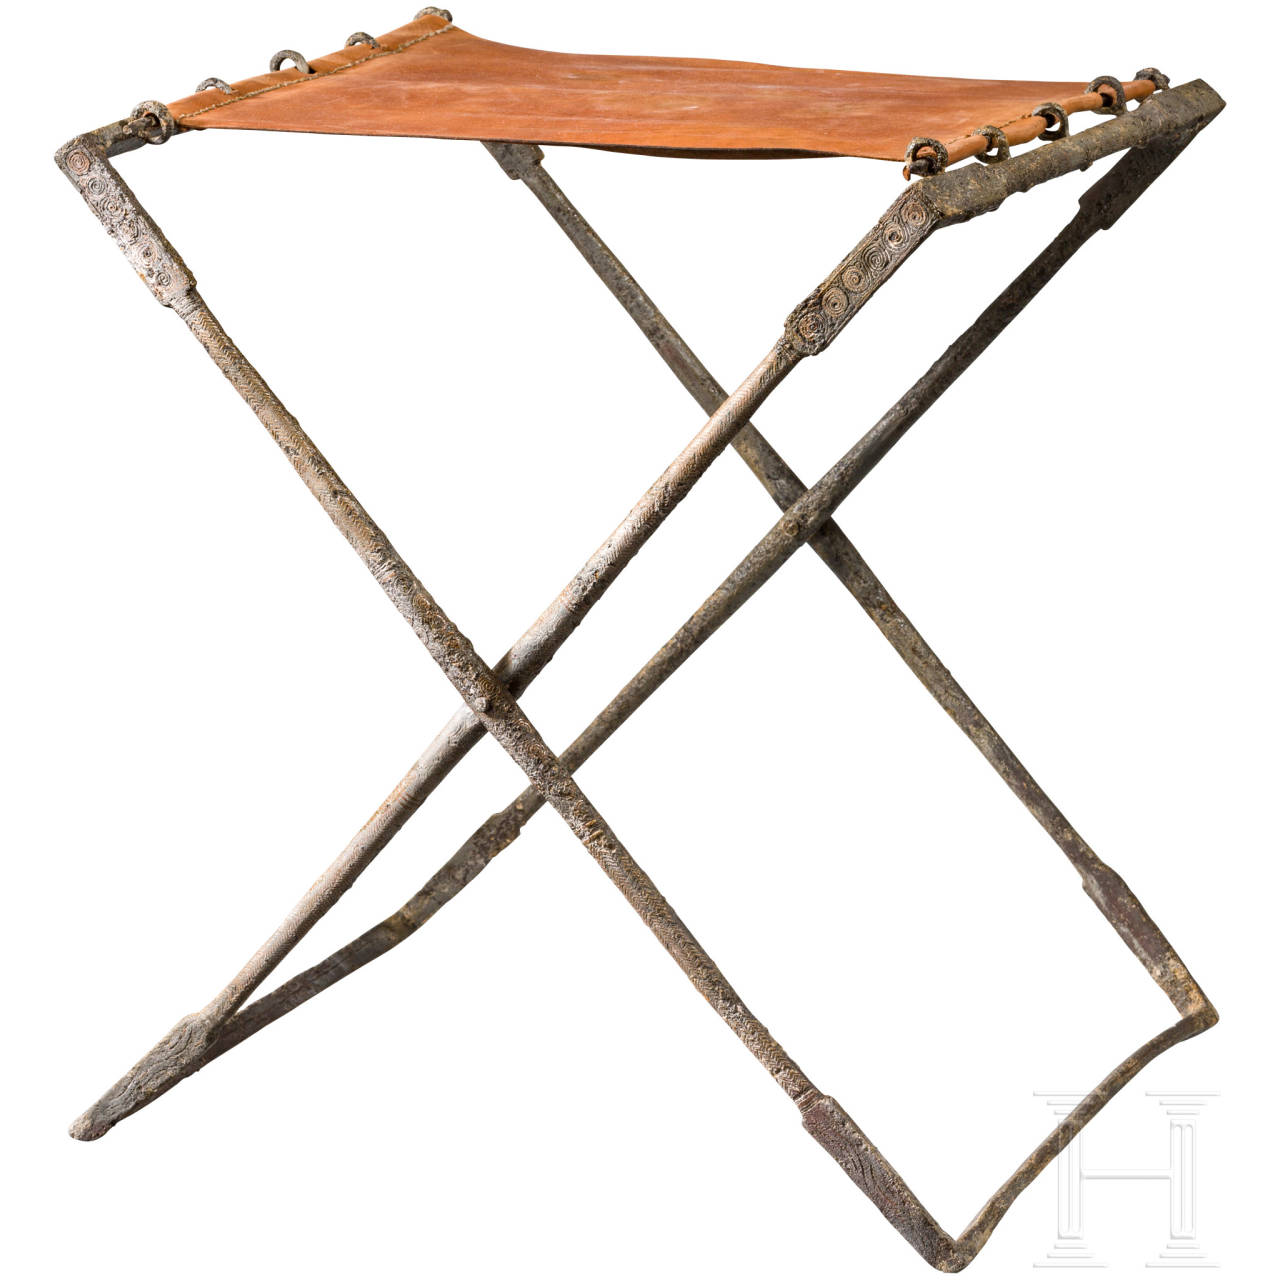 A Roman folding chair in iron for a commander in the field (sella castrensis), 2nd - 6th century